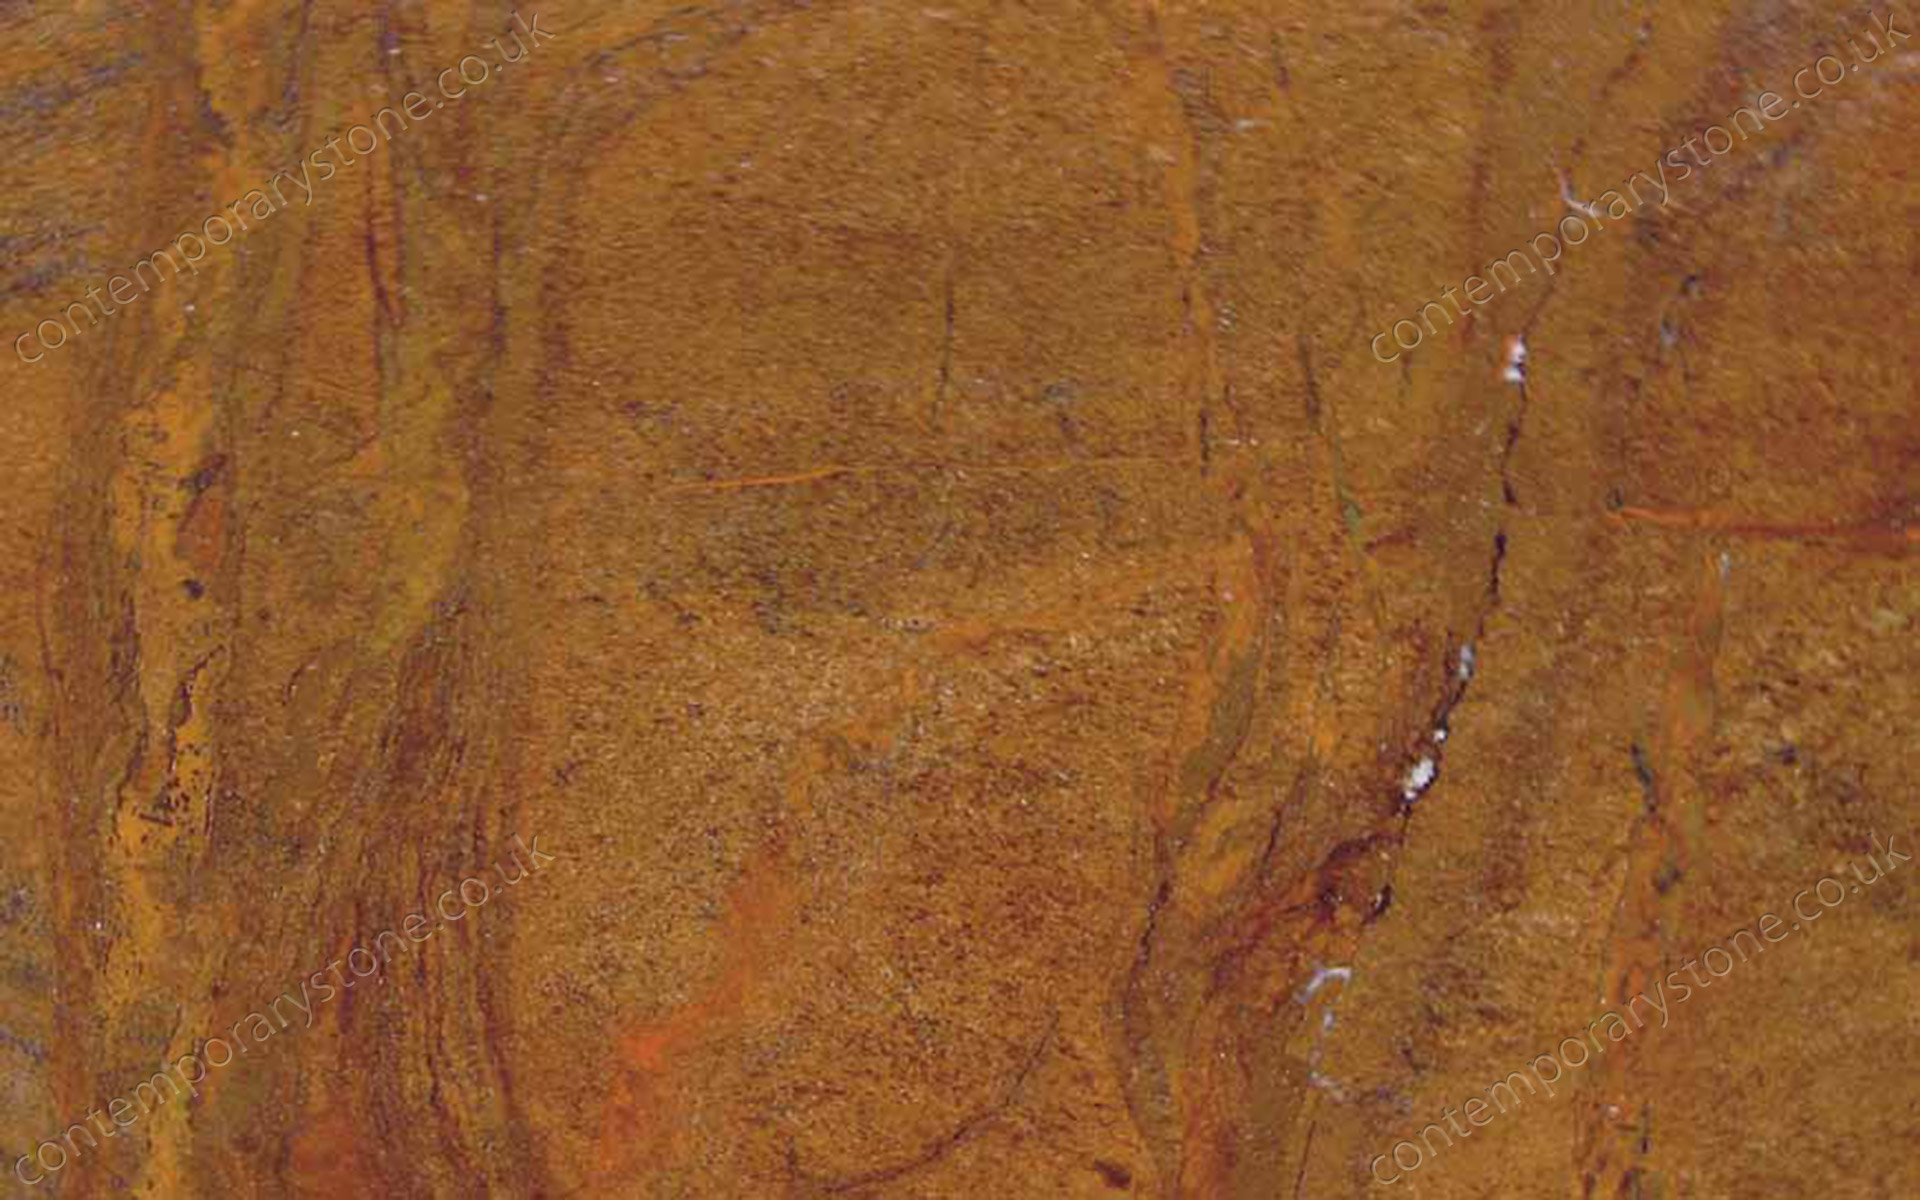 Orite granite close-up